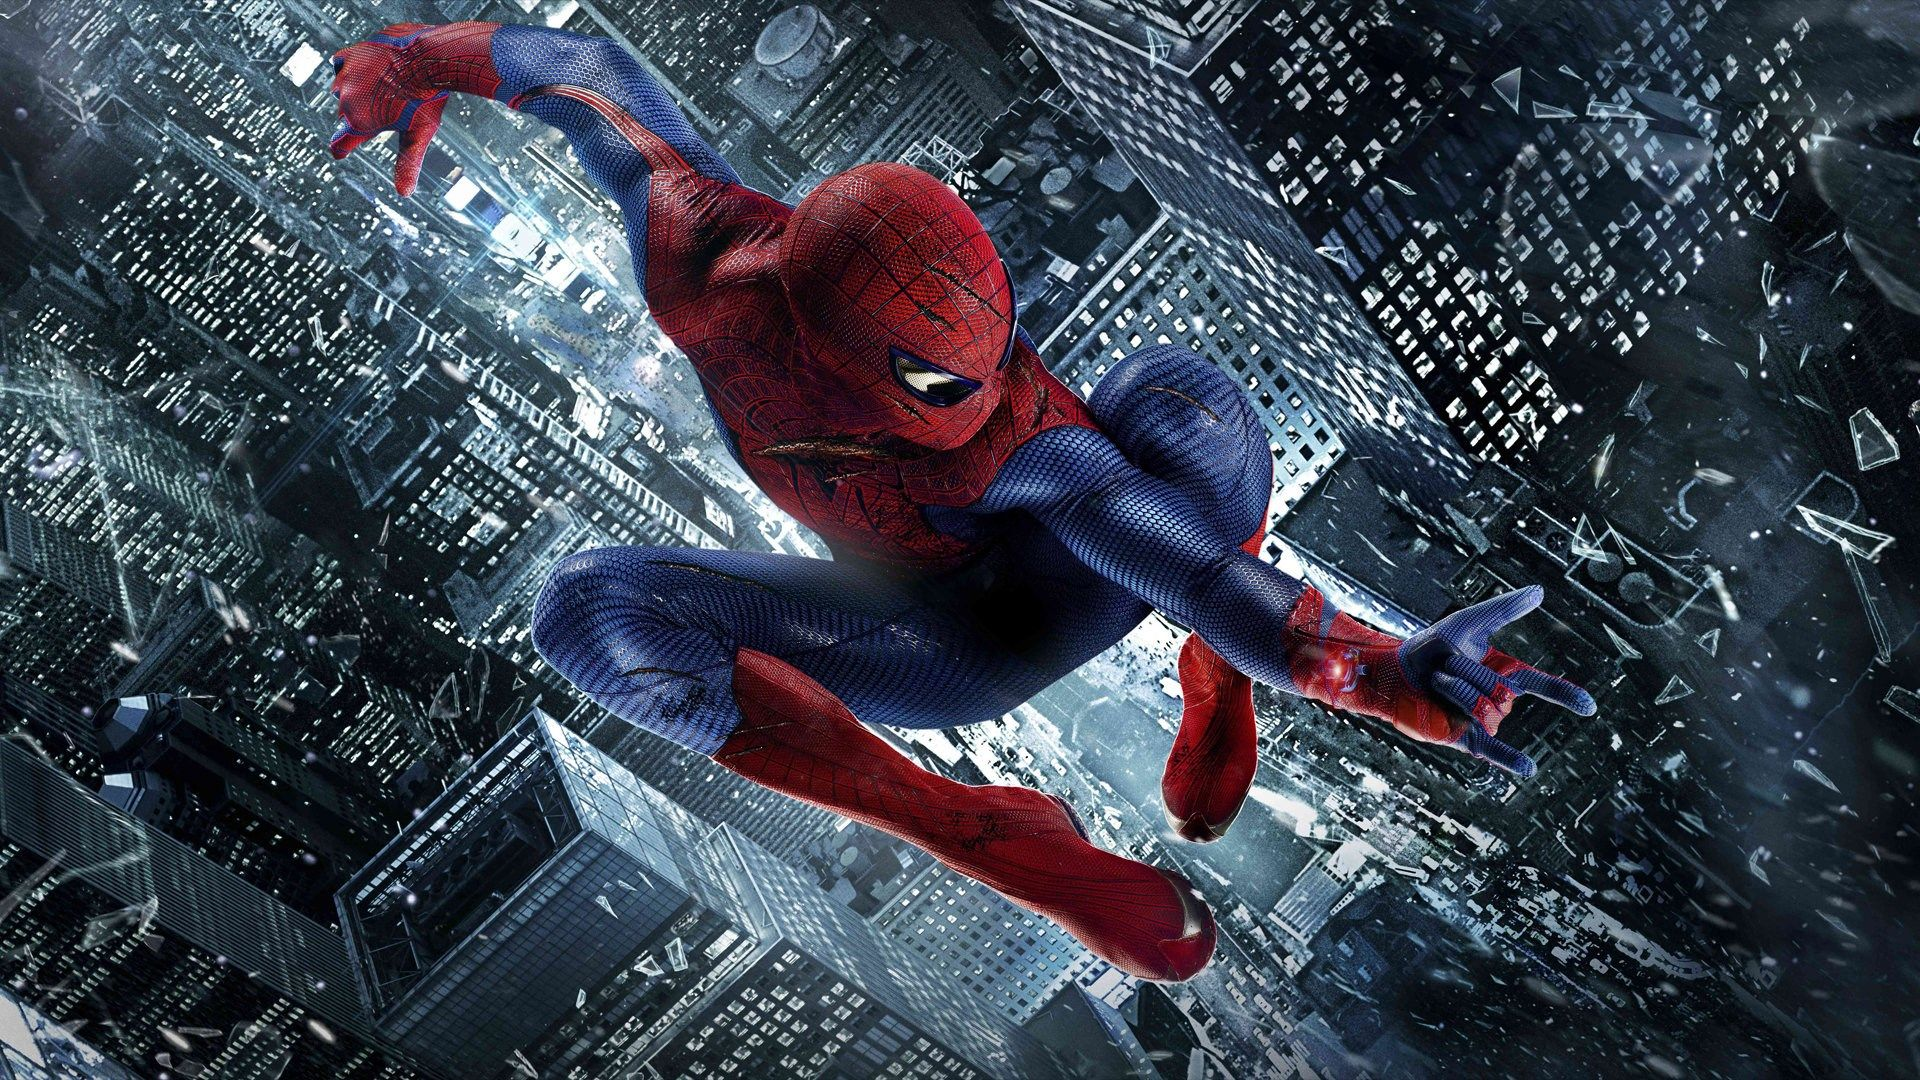 1920x1080 Px Widescreen Wallpapers The Amazing Spider Man Backround By Hurley Sinclair For